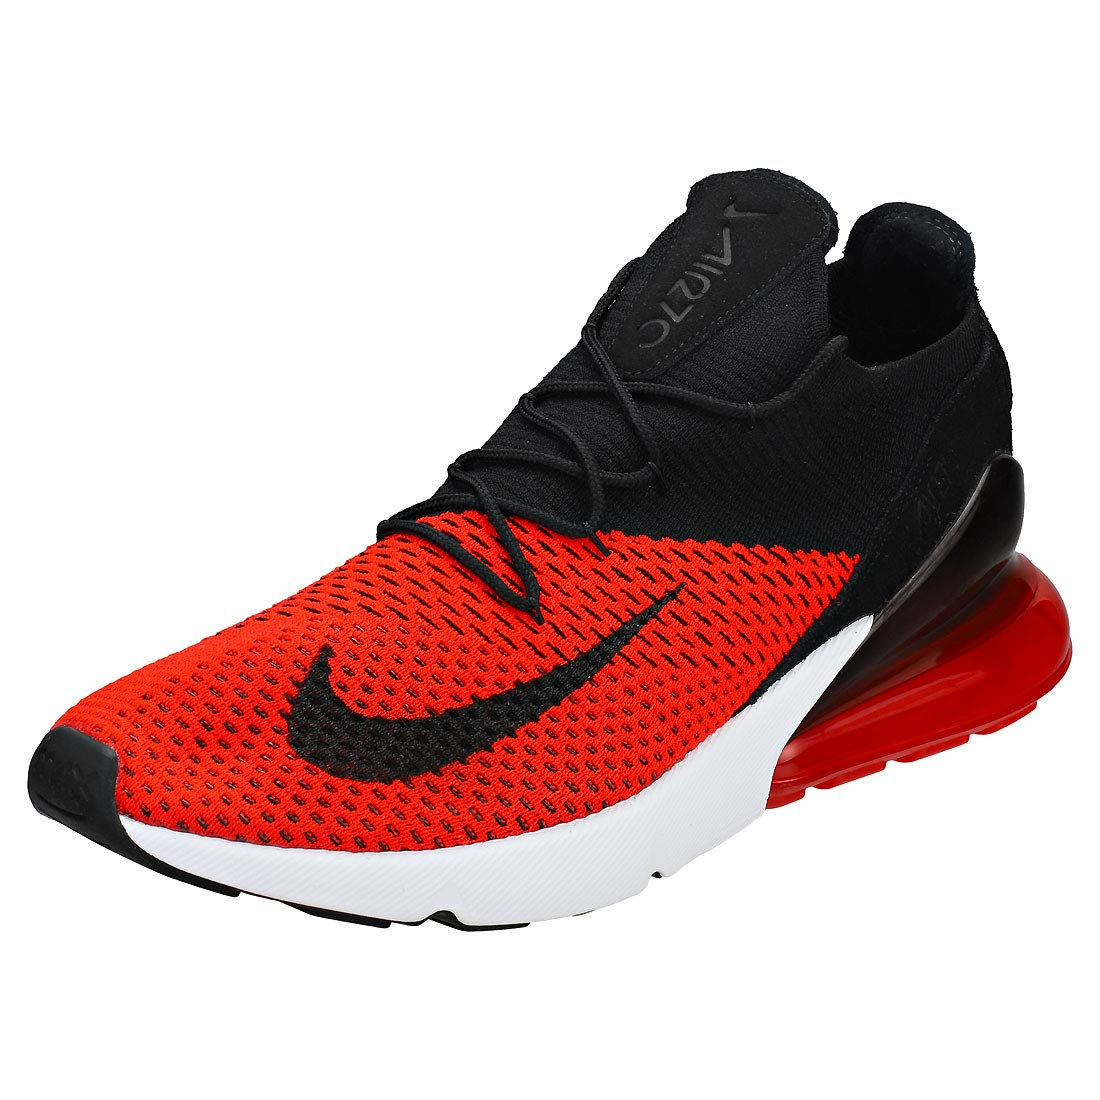 reputable site 6462e e6809 Nike Air Max 270 Flyknit Mens Running Trainers Ao1023 ...